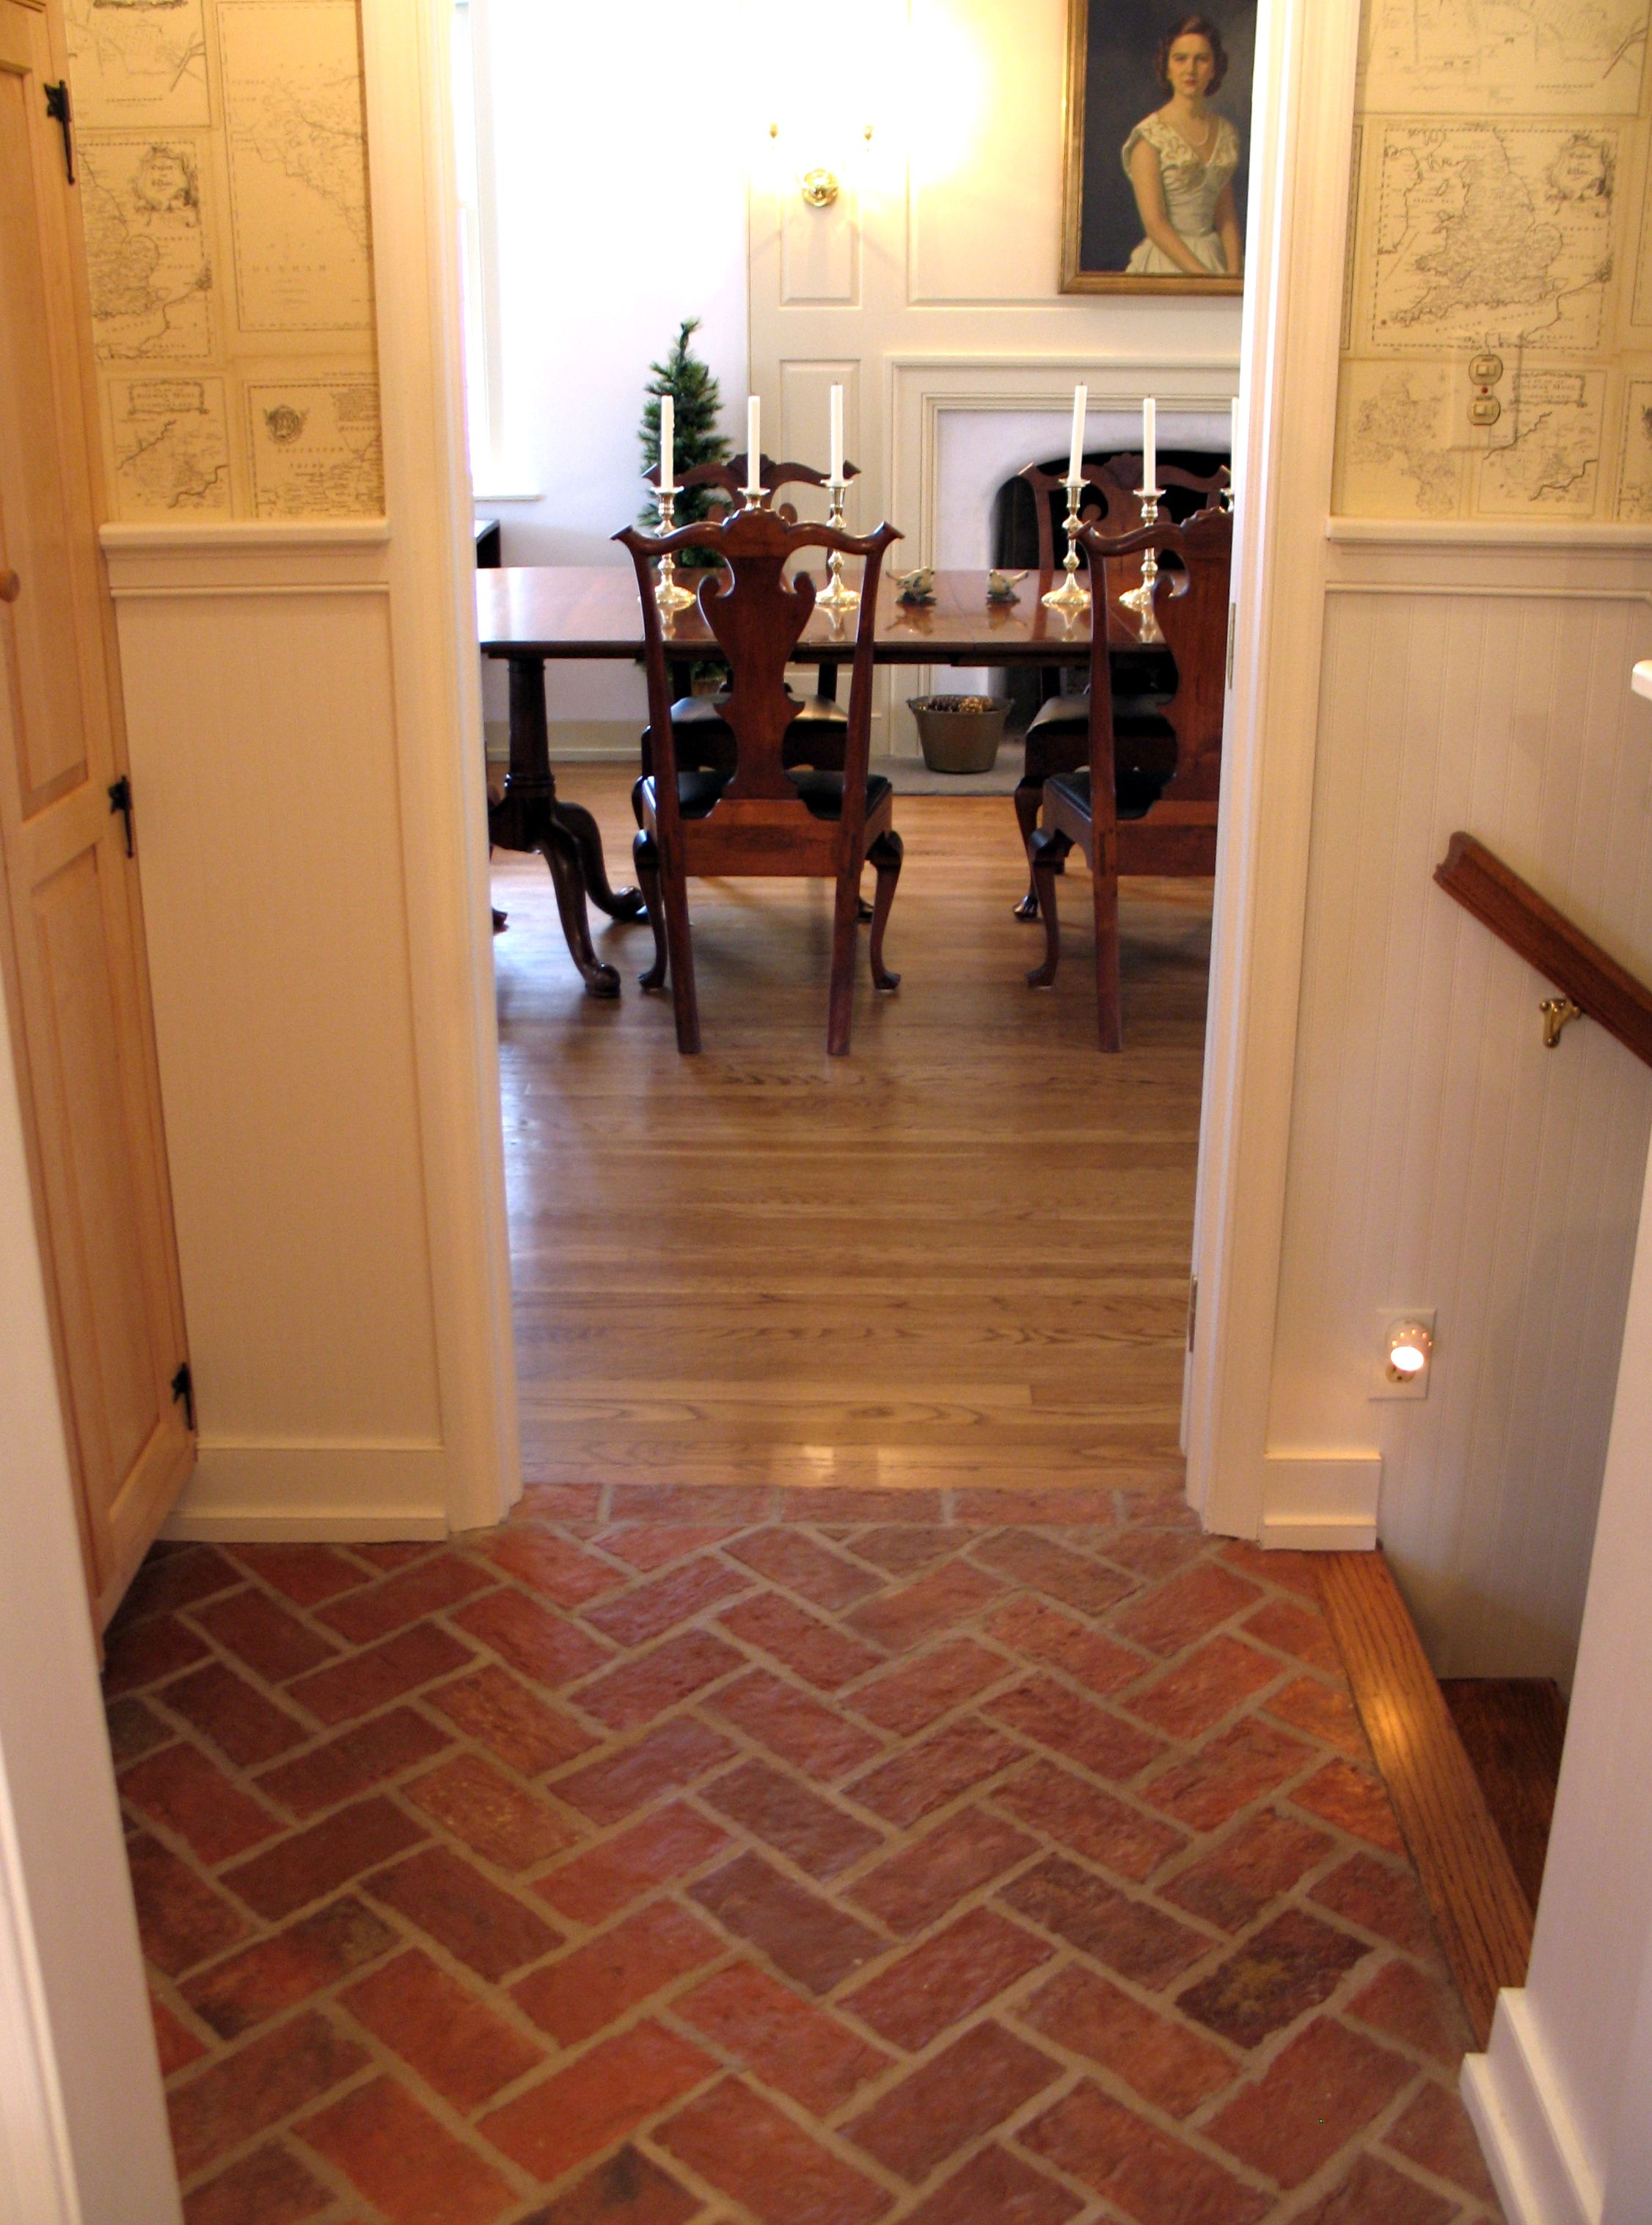 Mudroom wrights ferry 48 brick tile love love love traditional antique 48 brick tile news from inglenook tile dailygadgetfo Choice Image